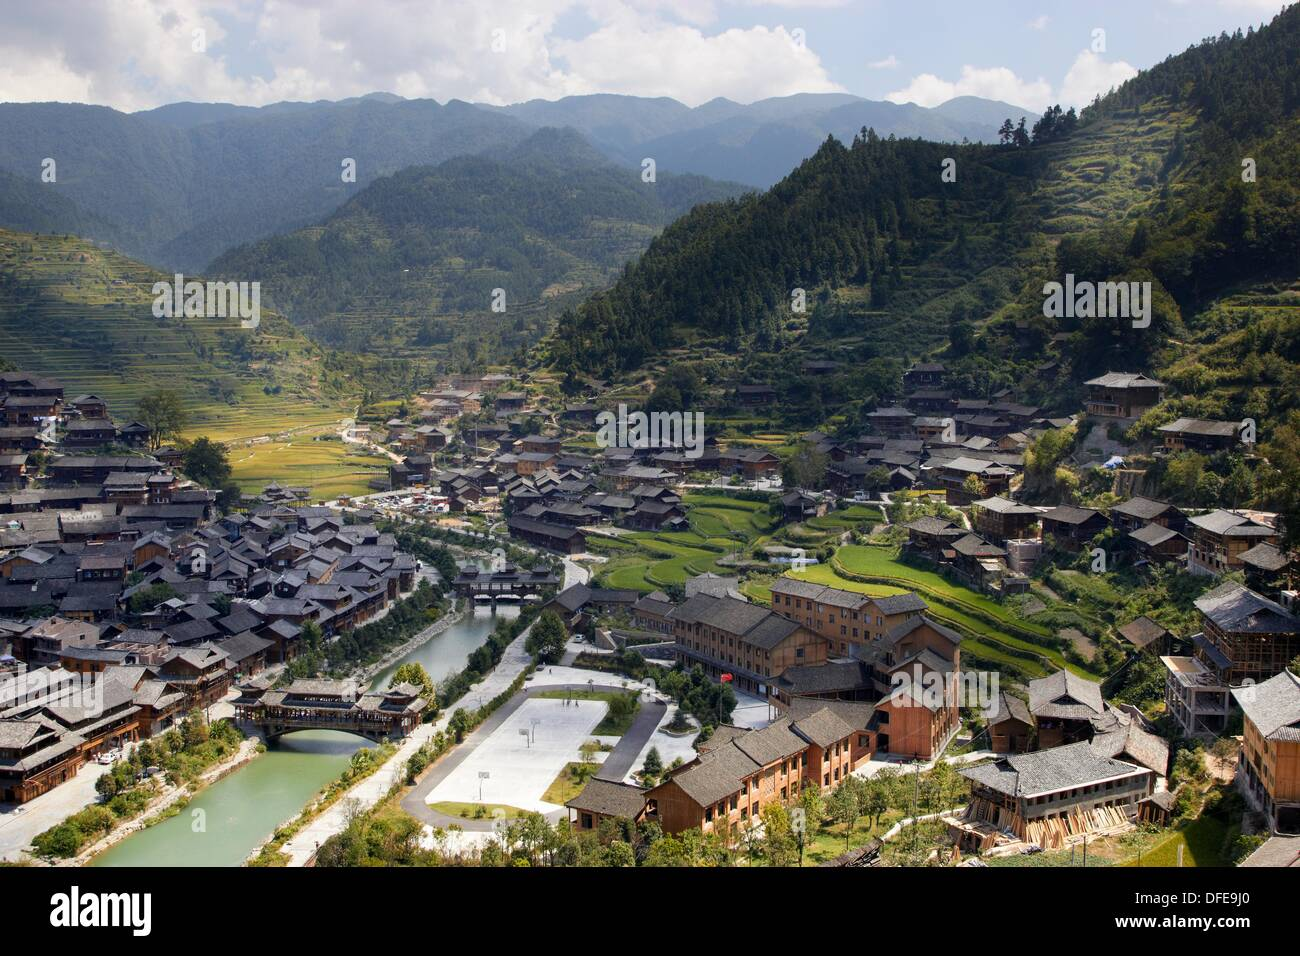 Xijiang village, Xijiang, Guizhou, China Stock Photo